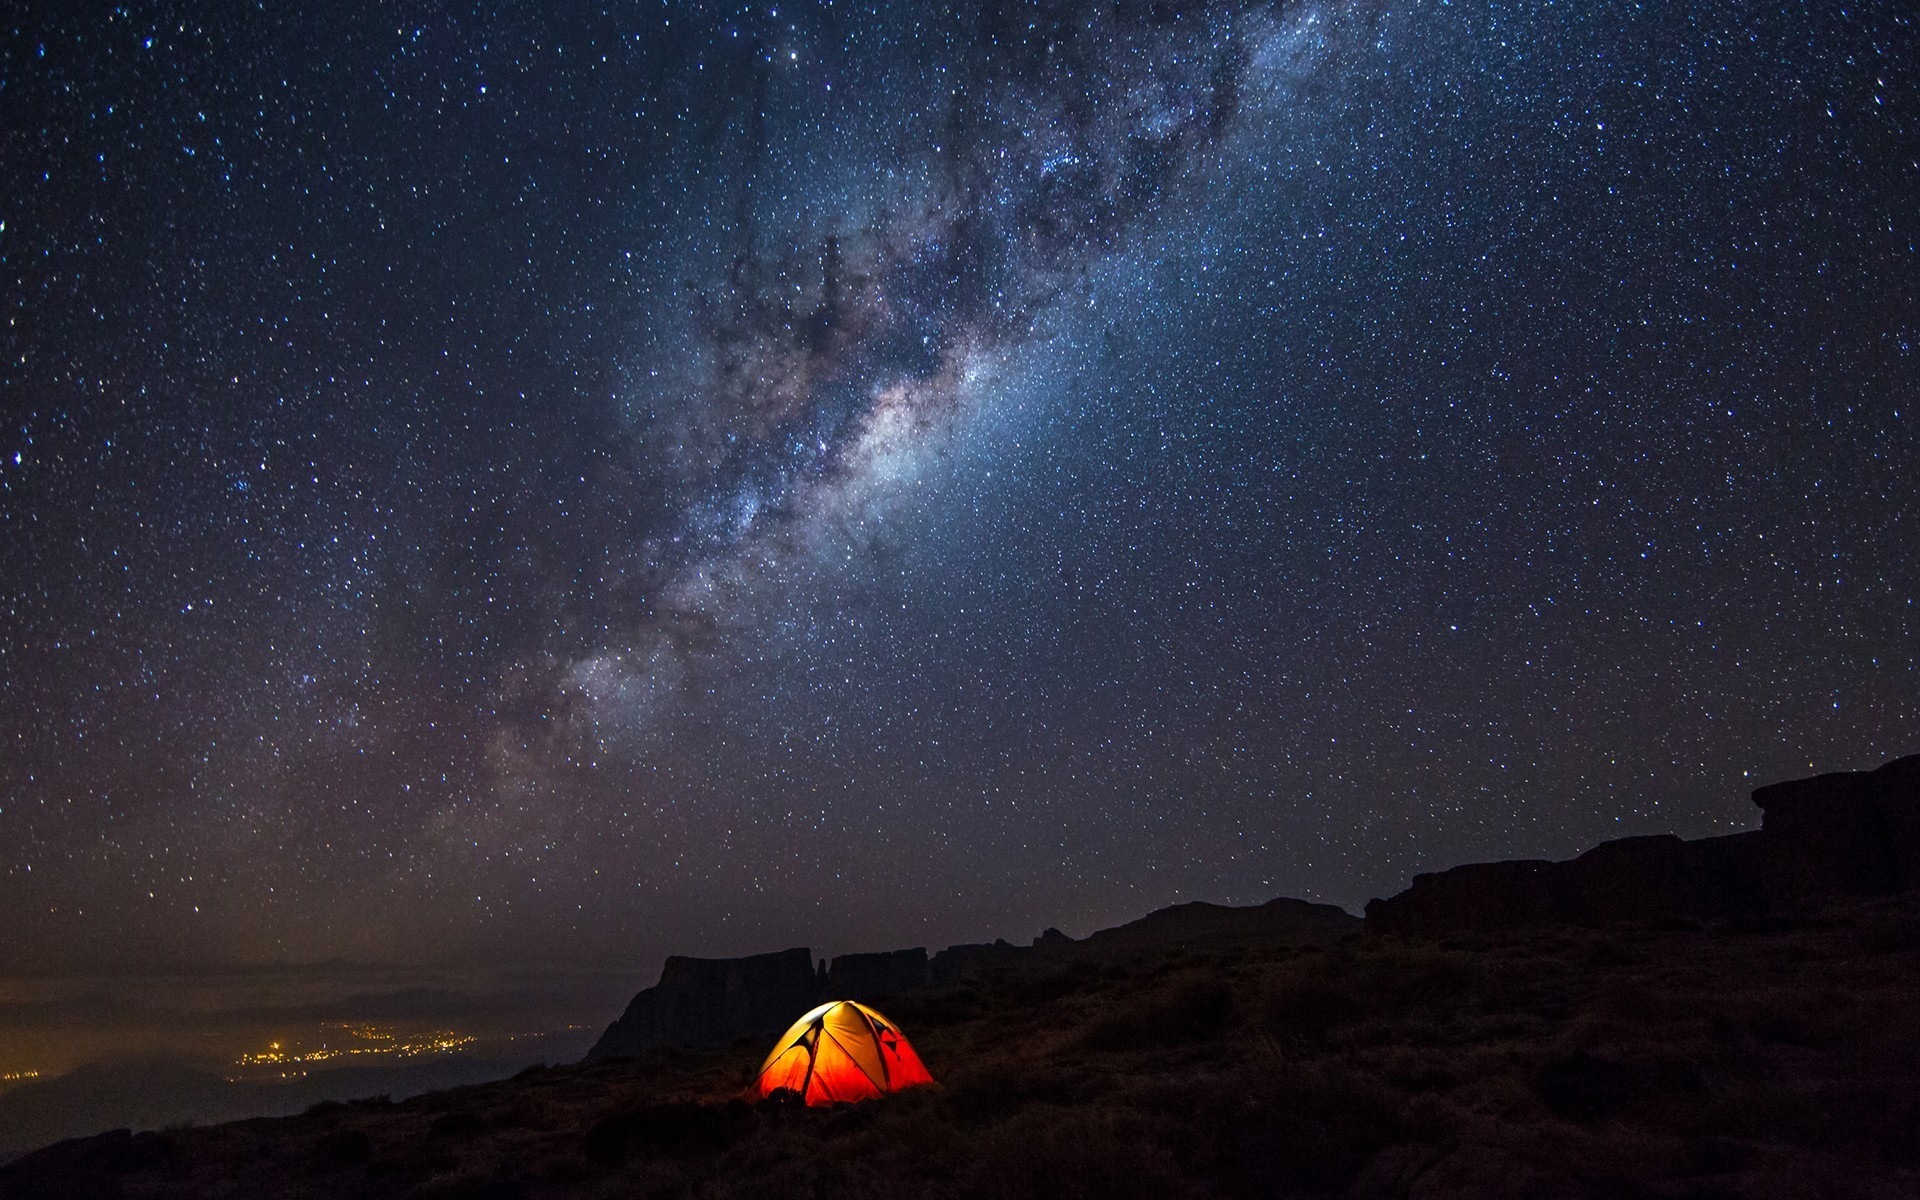 Star Party under the galactic center of Milky way